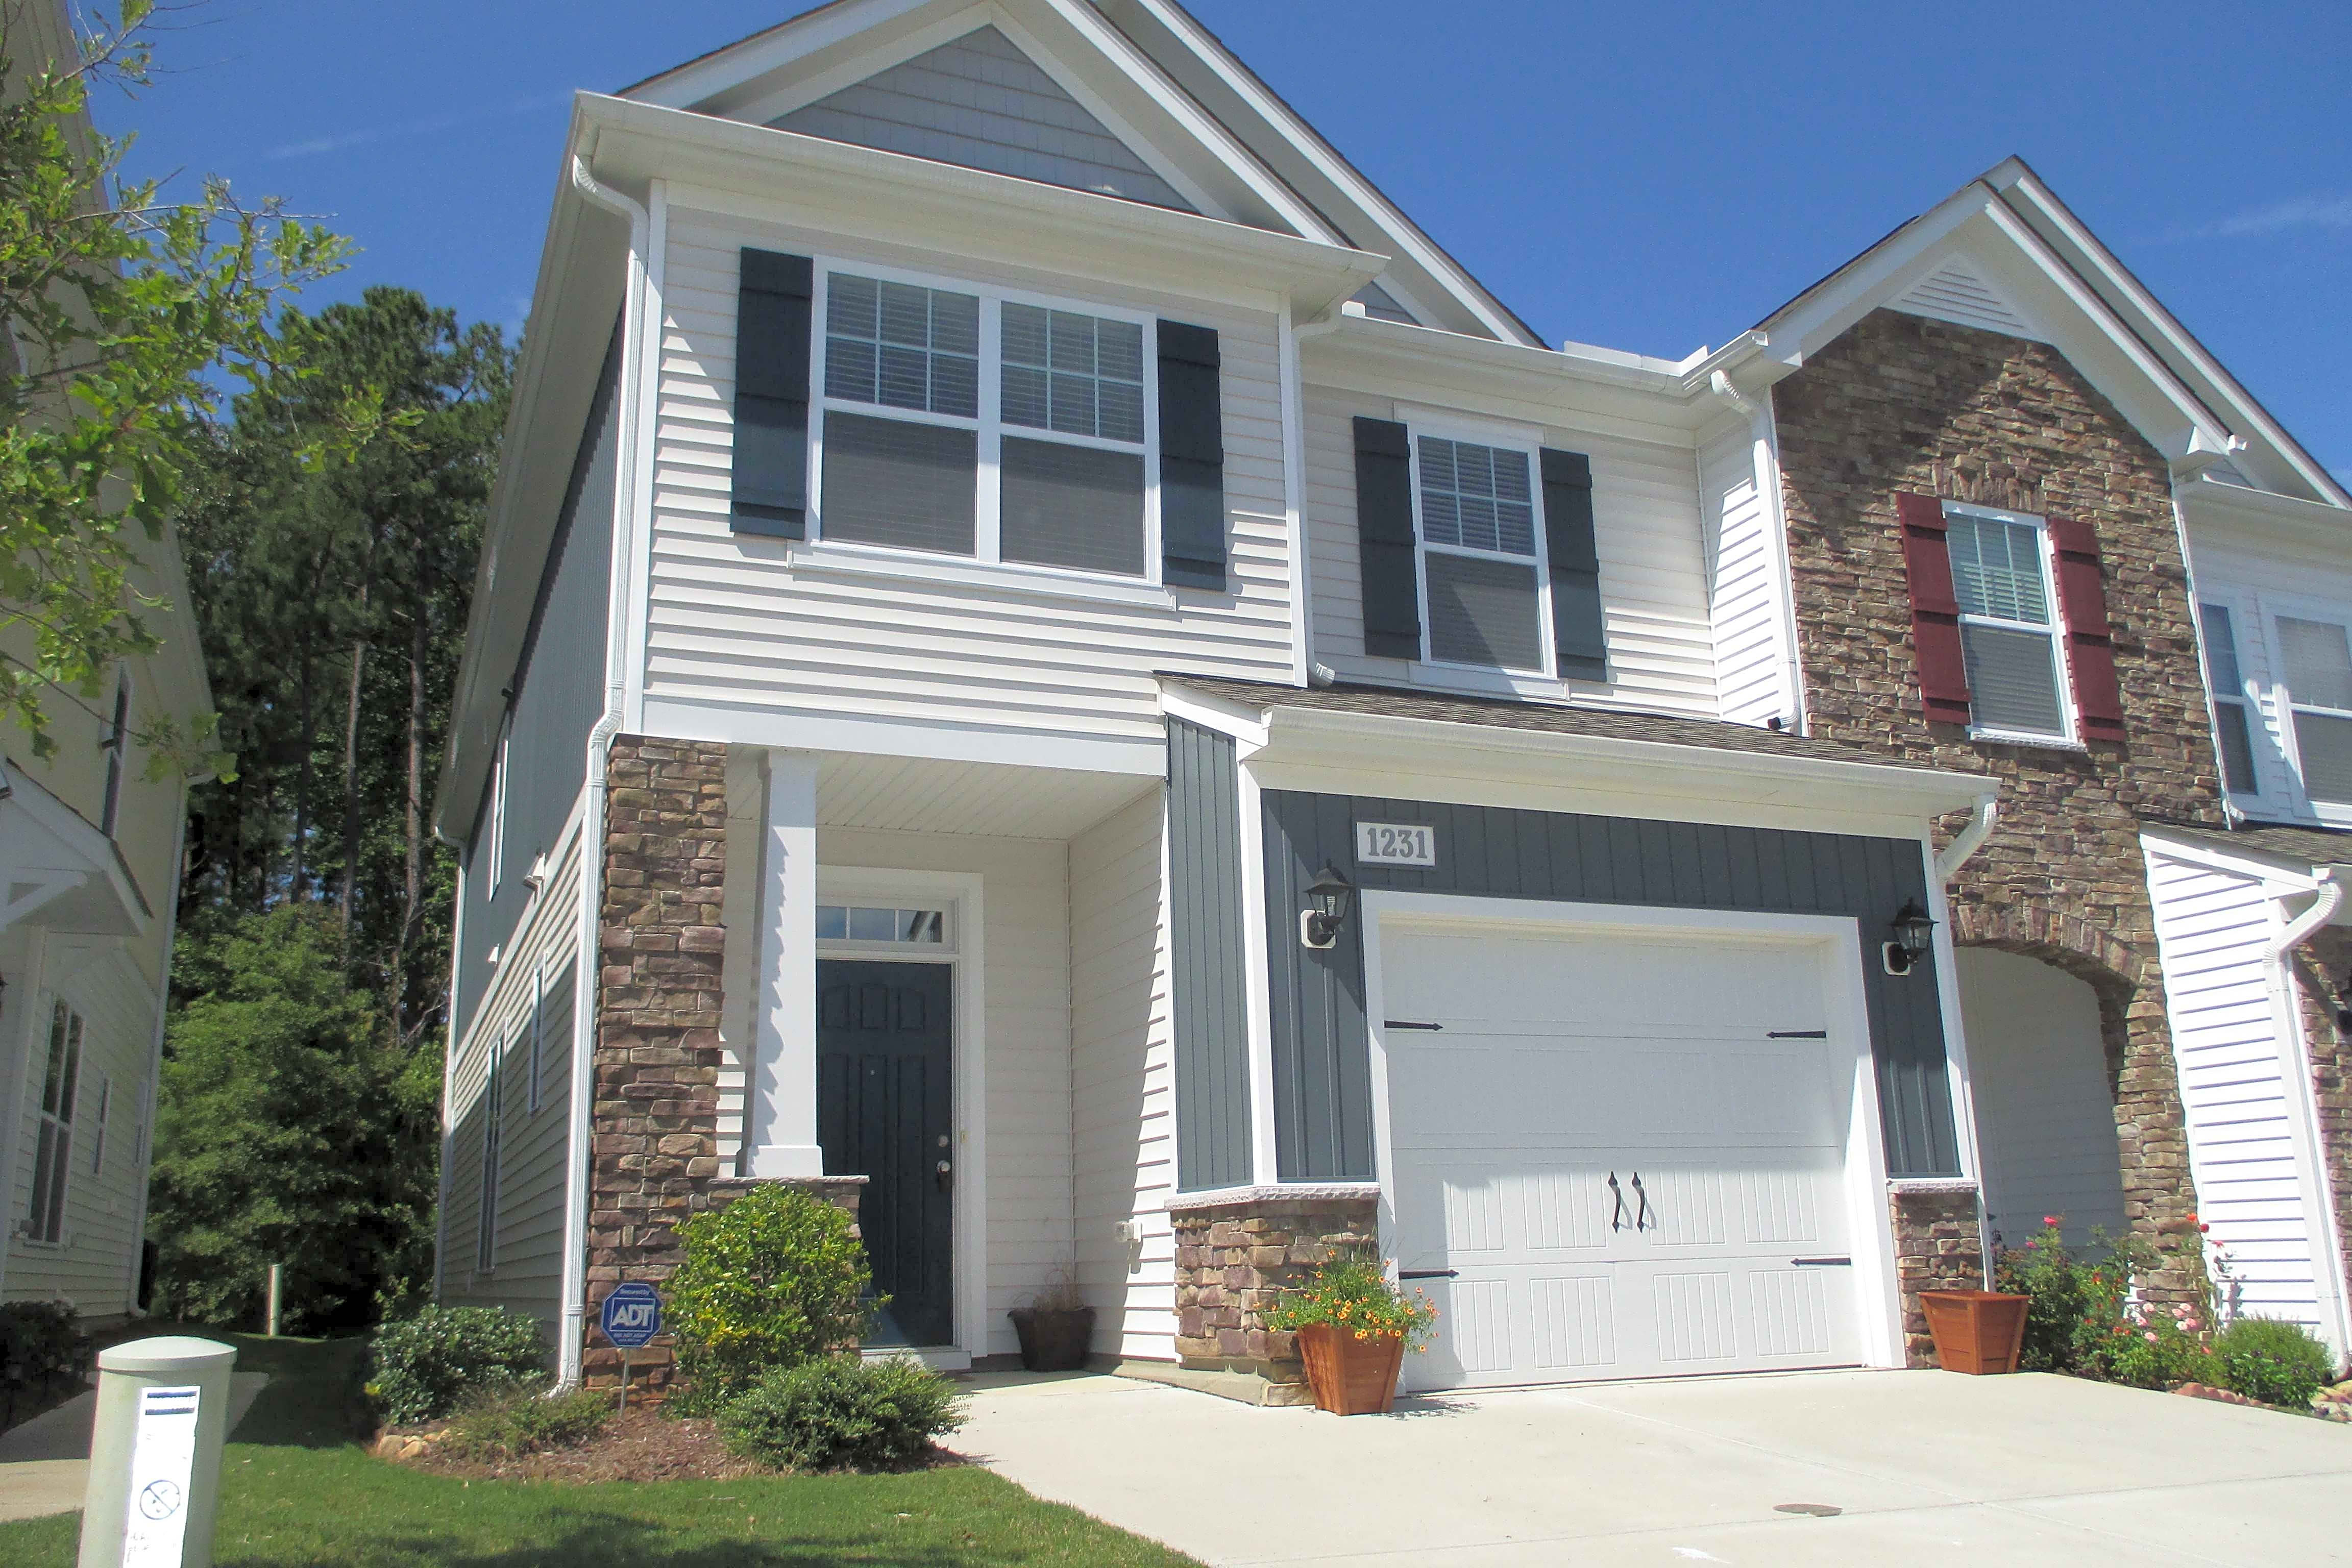 Raleigh condo rentals in raleigh condos for rent in raleigh north carolina for 2 bedroom homes for rent raleigh nc